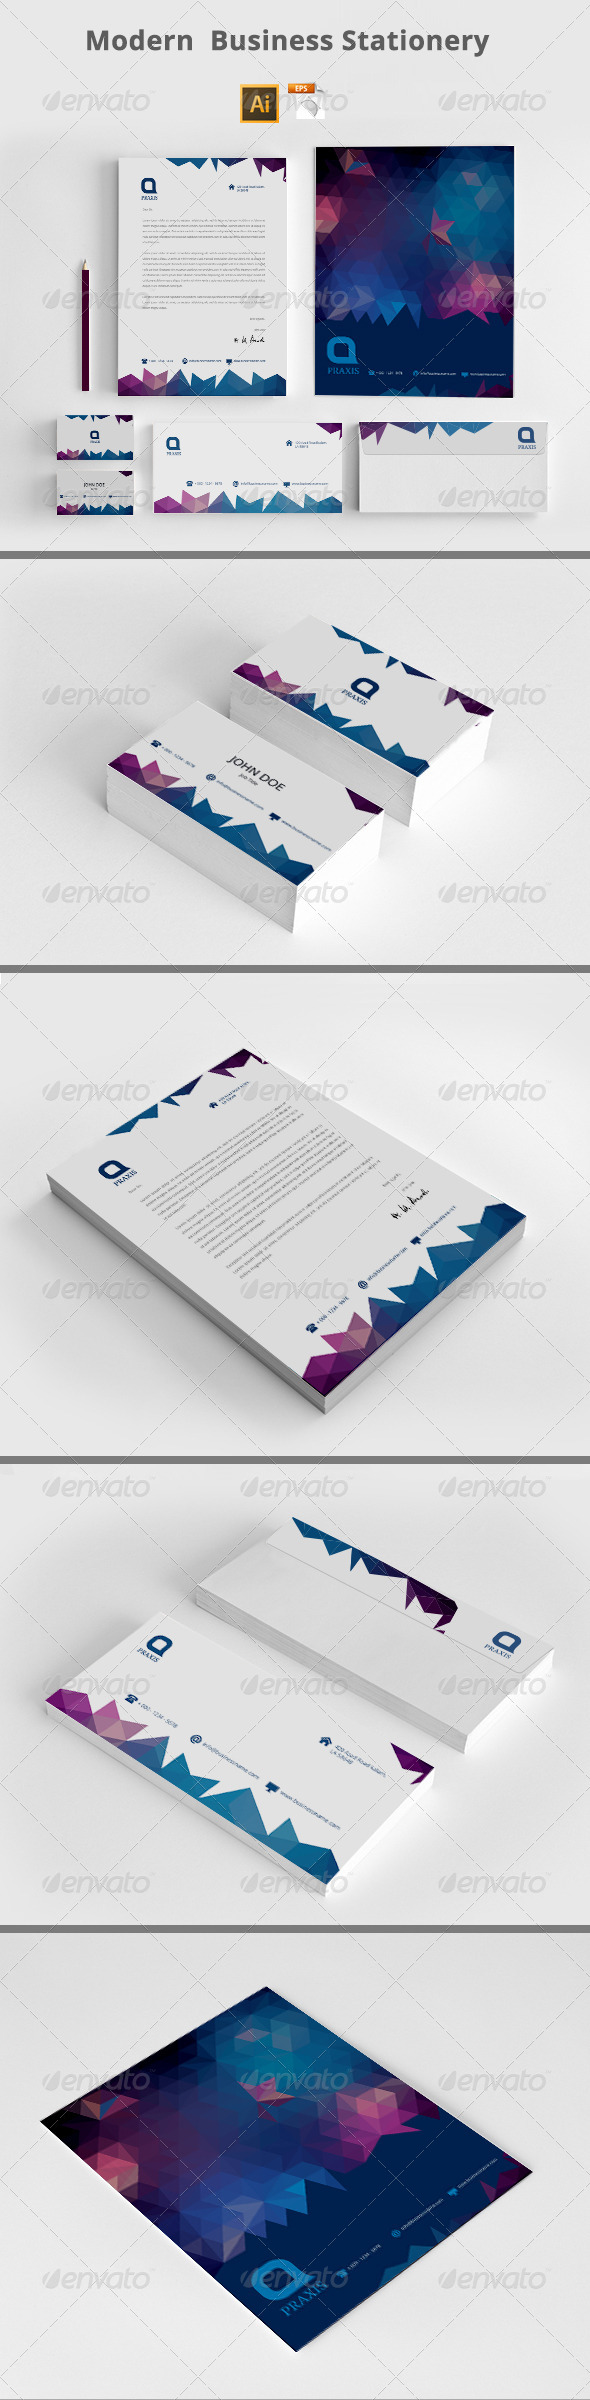 GraphicRiver Modern Business Stationery 8156306